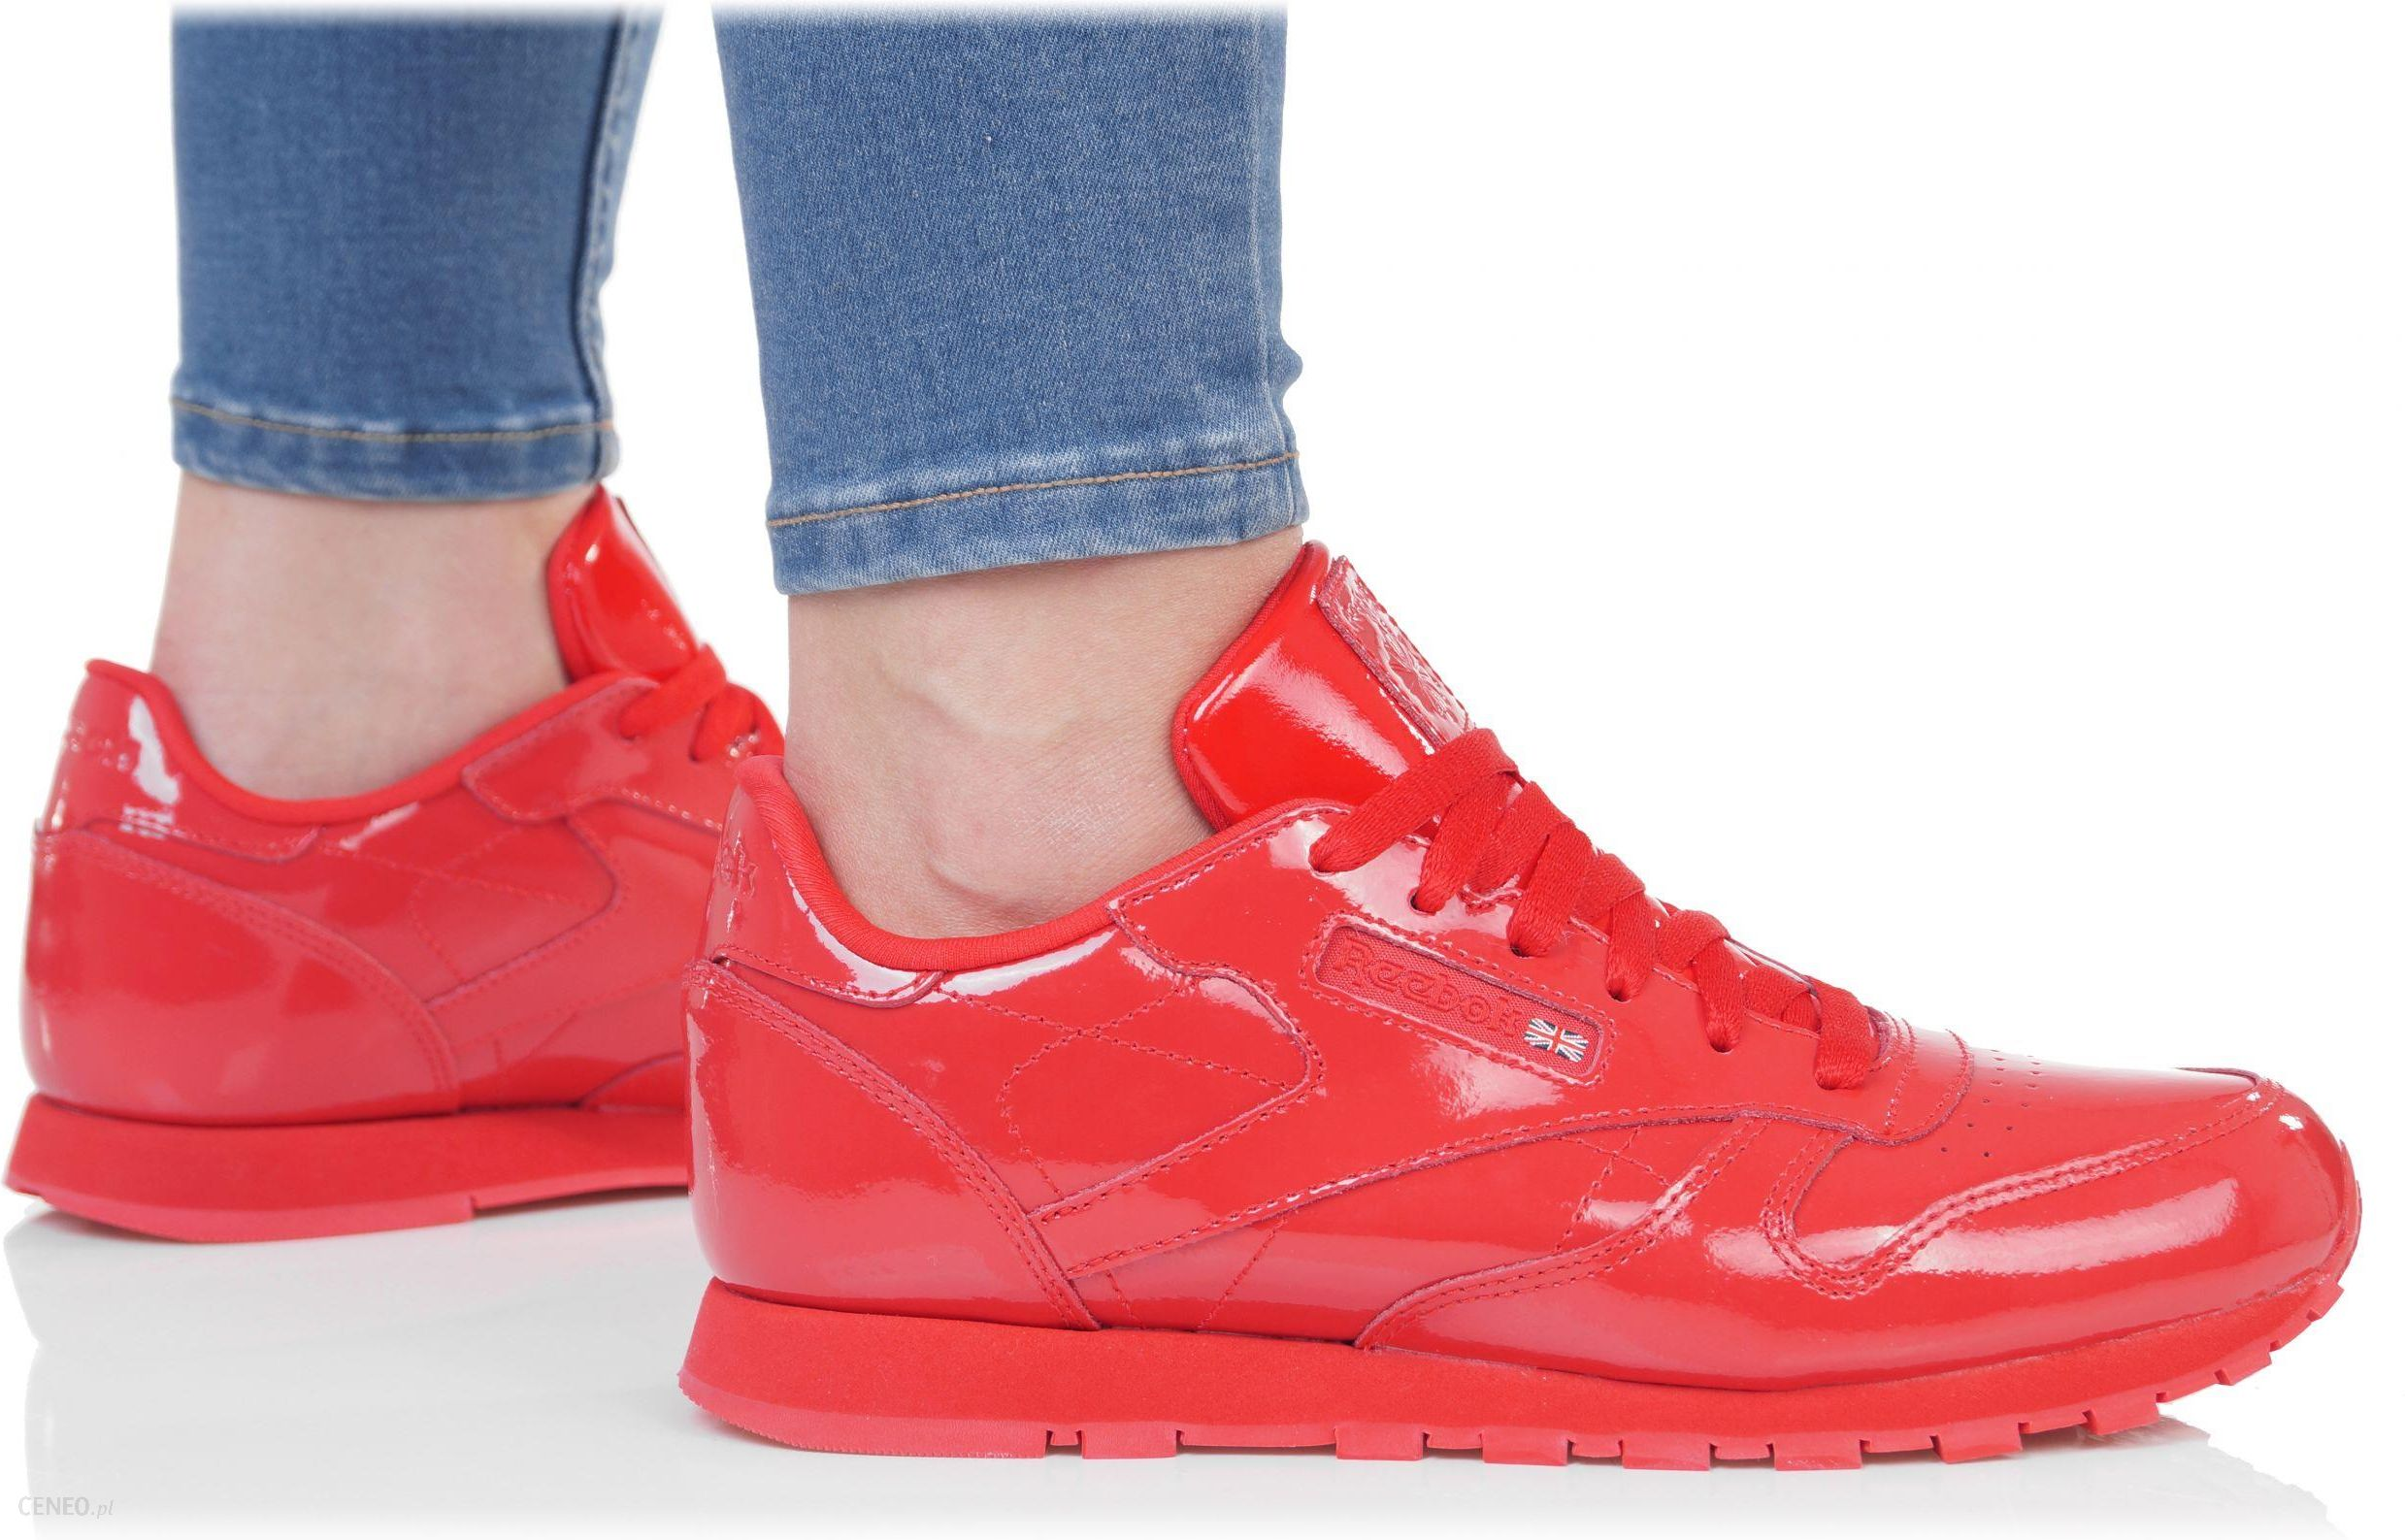 c1bd3bb0 Buty Reebok Classic Leather Patent CN2062 R. 36 - Ceny i opinie ...